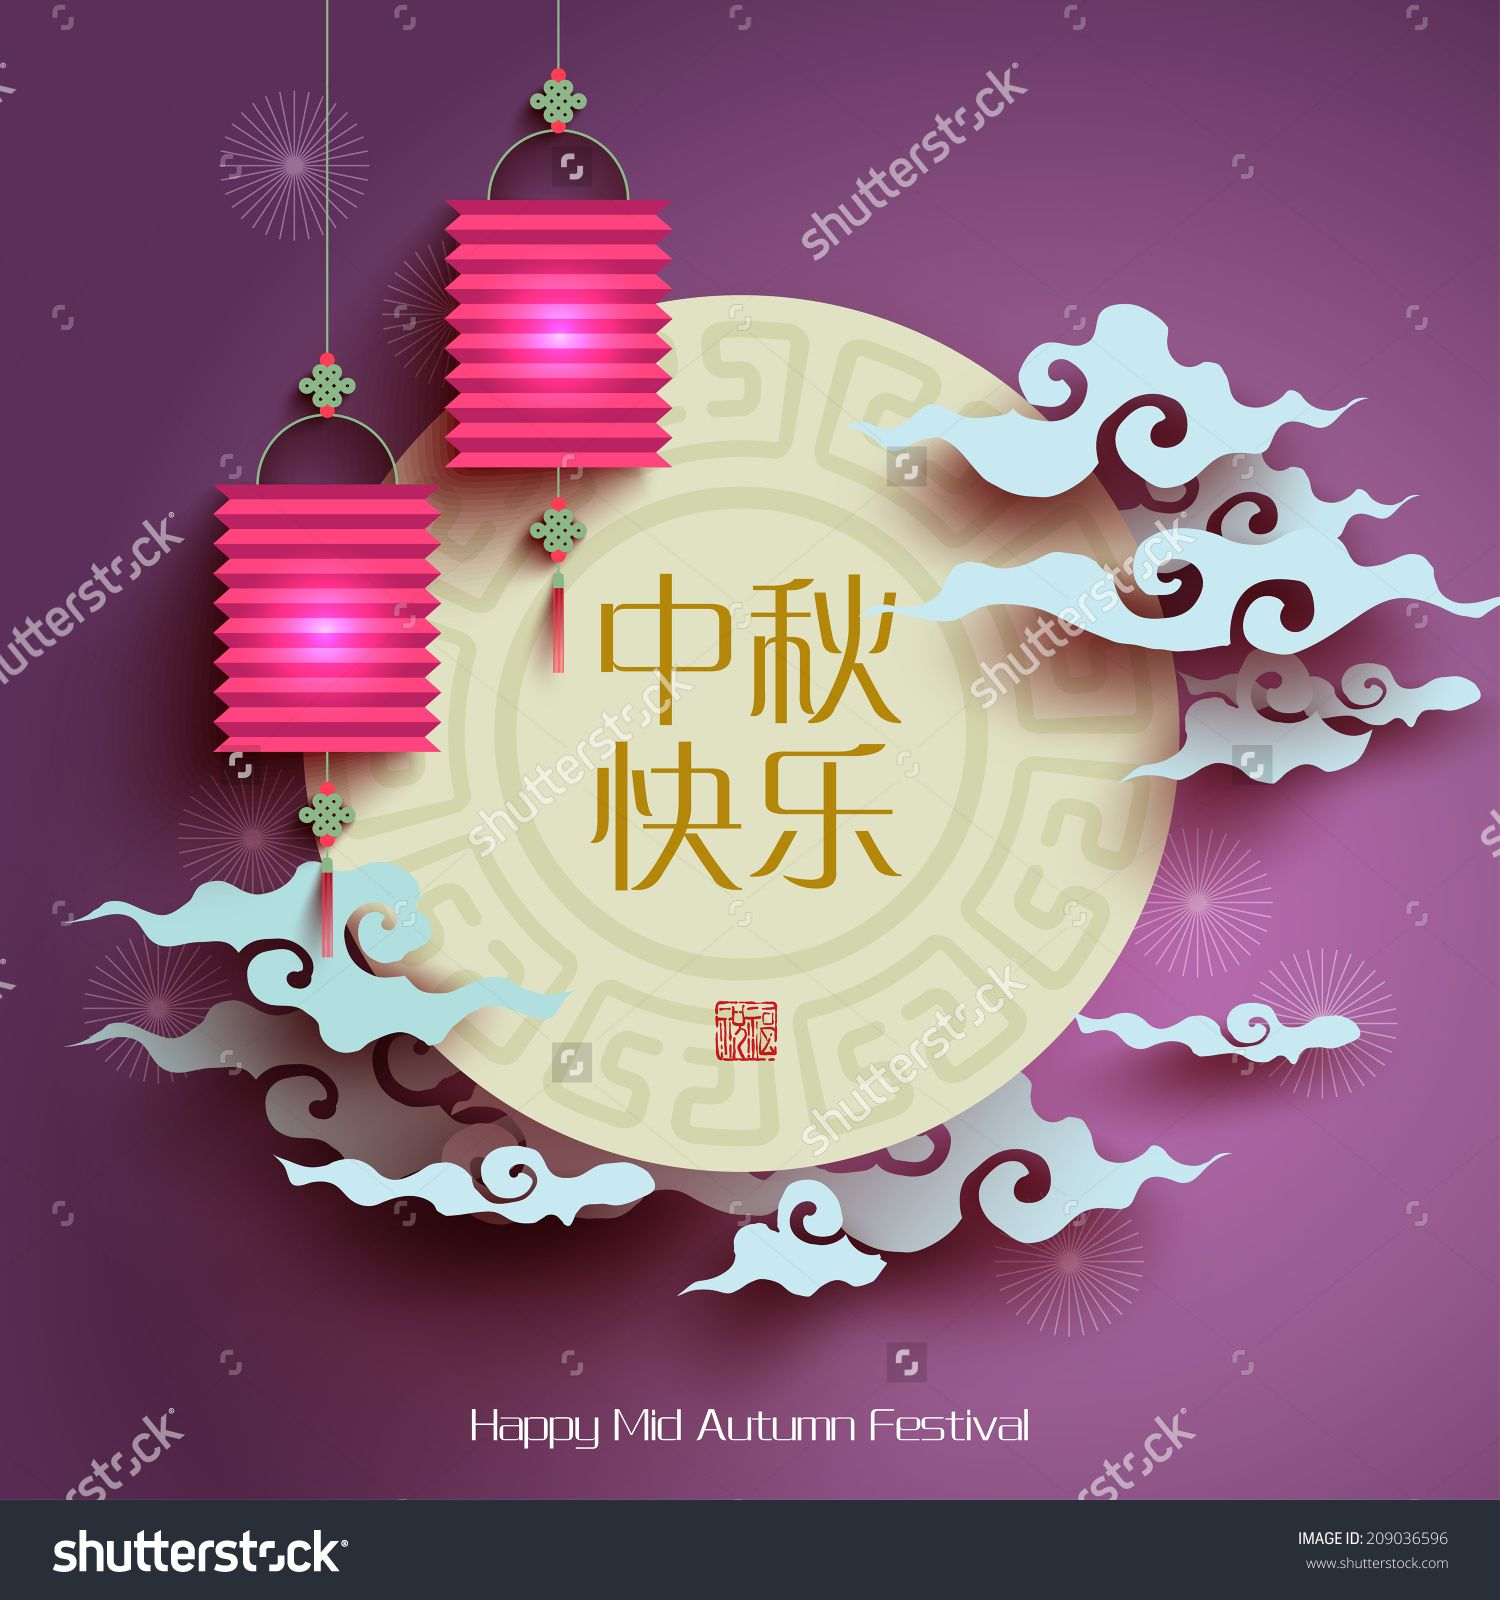 Image result for mid autumn festival 2016 design style pinterest image result for mid autumn festival 2016 kristyandbryce Choice Image